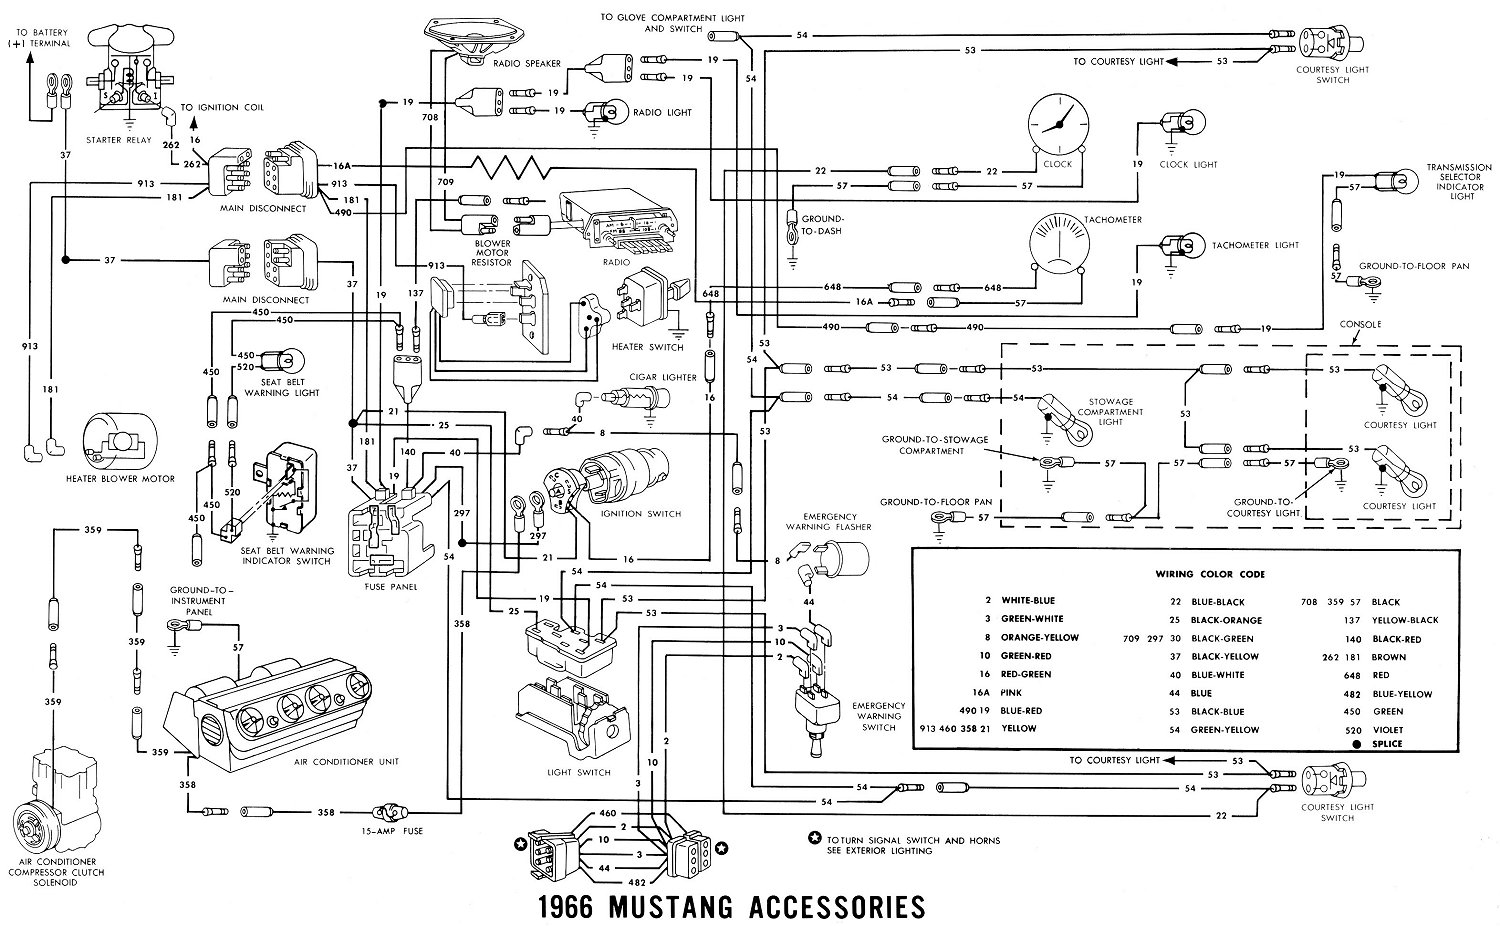 1966 Ford Mustang Accessories Wiring Diagram?wu003d140u0026hu003d140 wiring diagram for 1970 ford mustang readingrat net 2007 Mustang Wiring Diagram at gsmportal.co